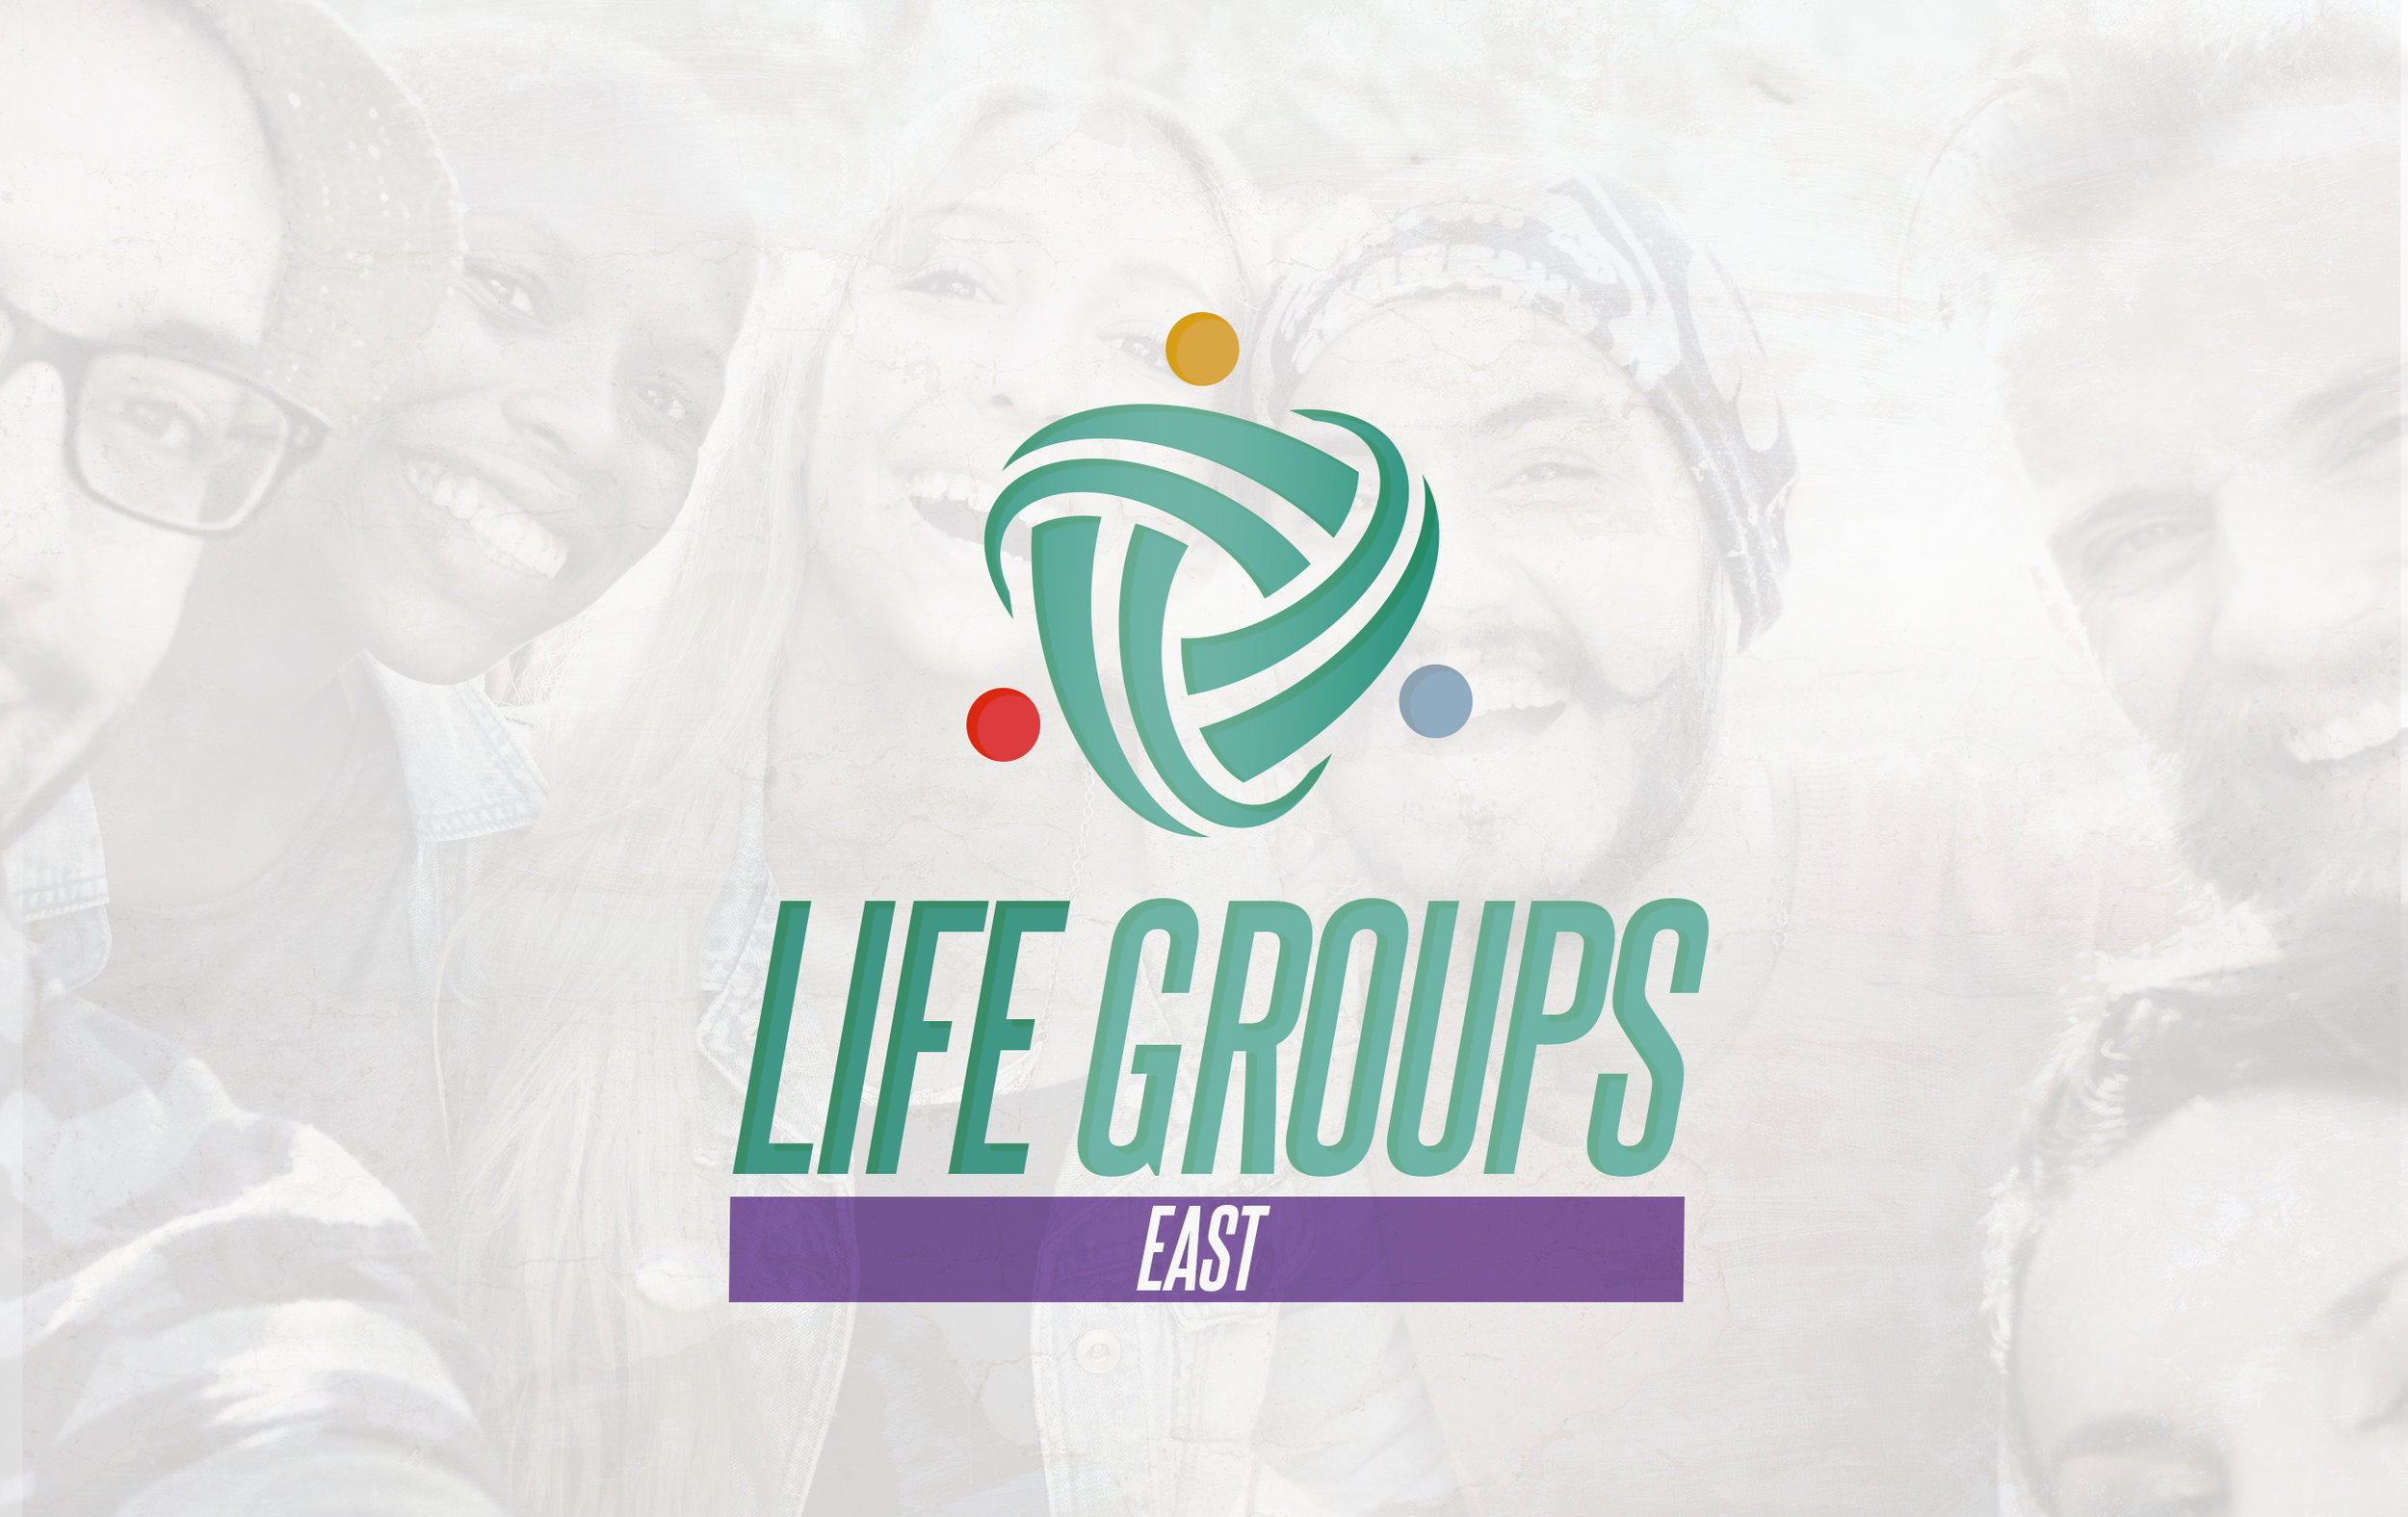 LIFEGroup_East.jpg